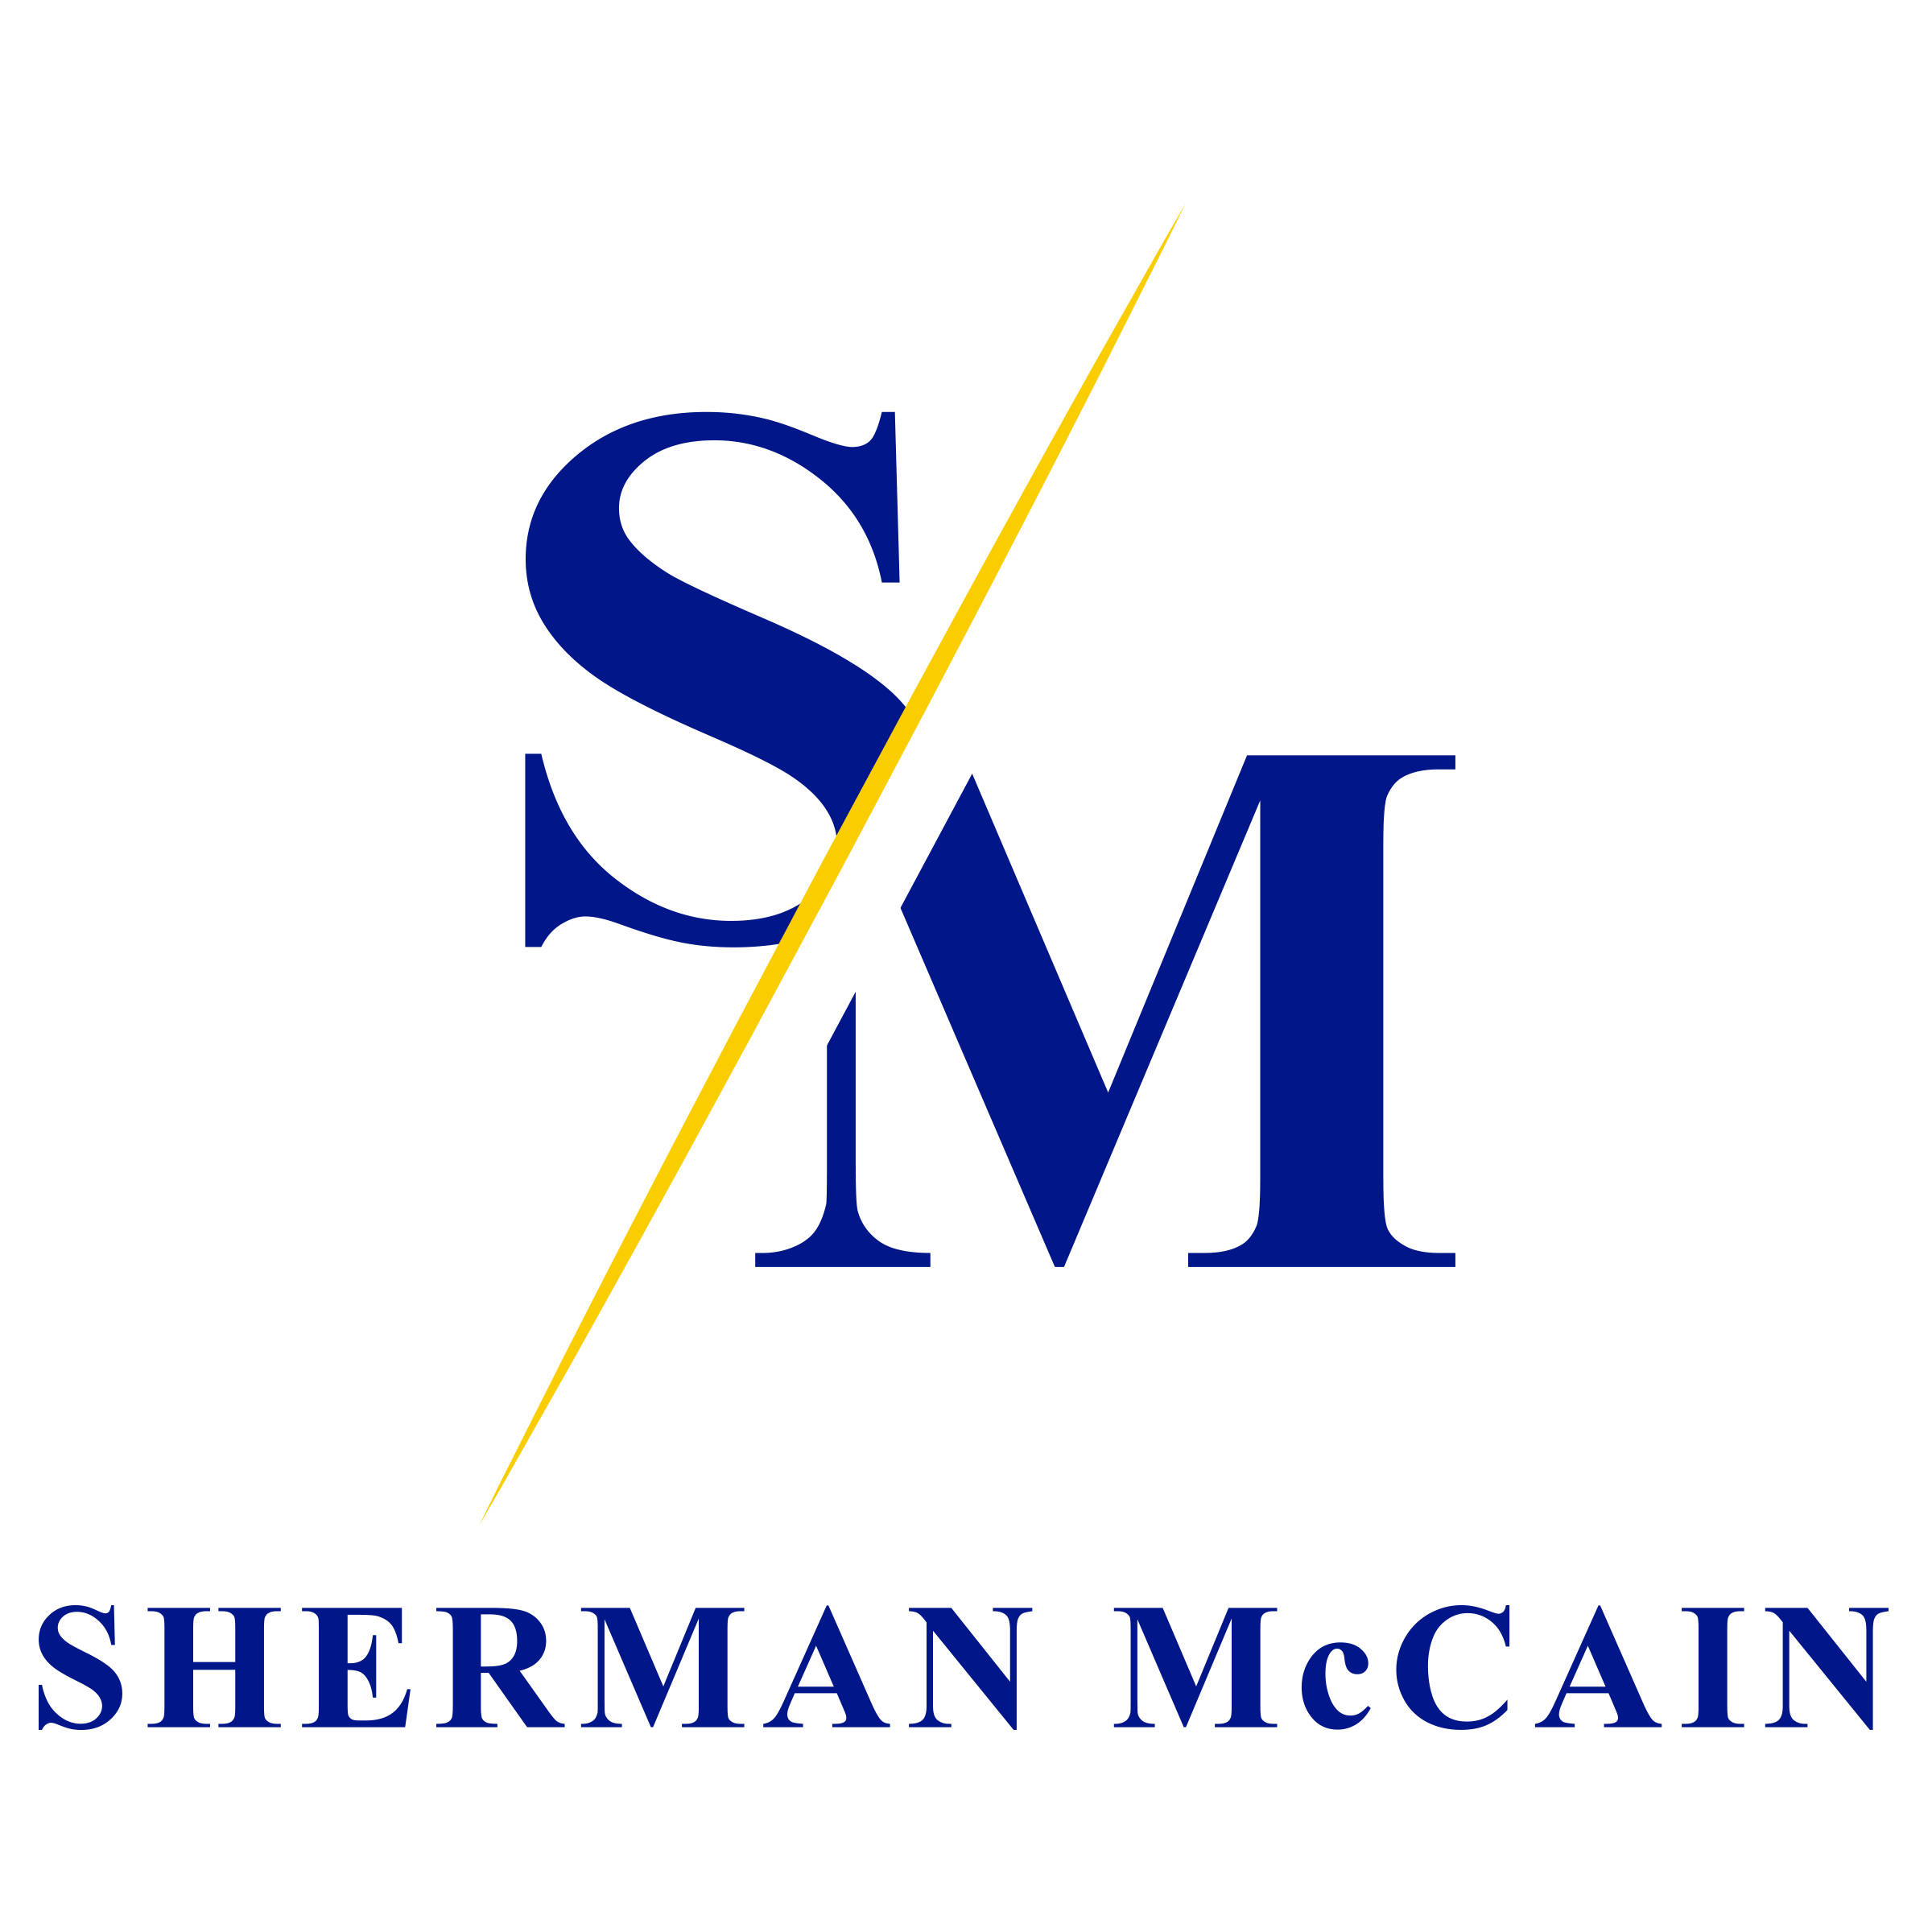 Sherman McCain Photography | Houston Portrait, Lifestyle & Advertising Photographer